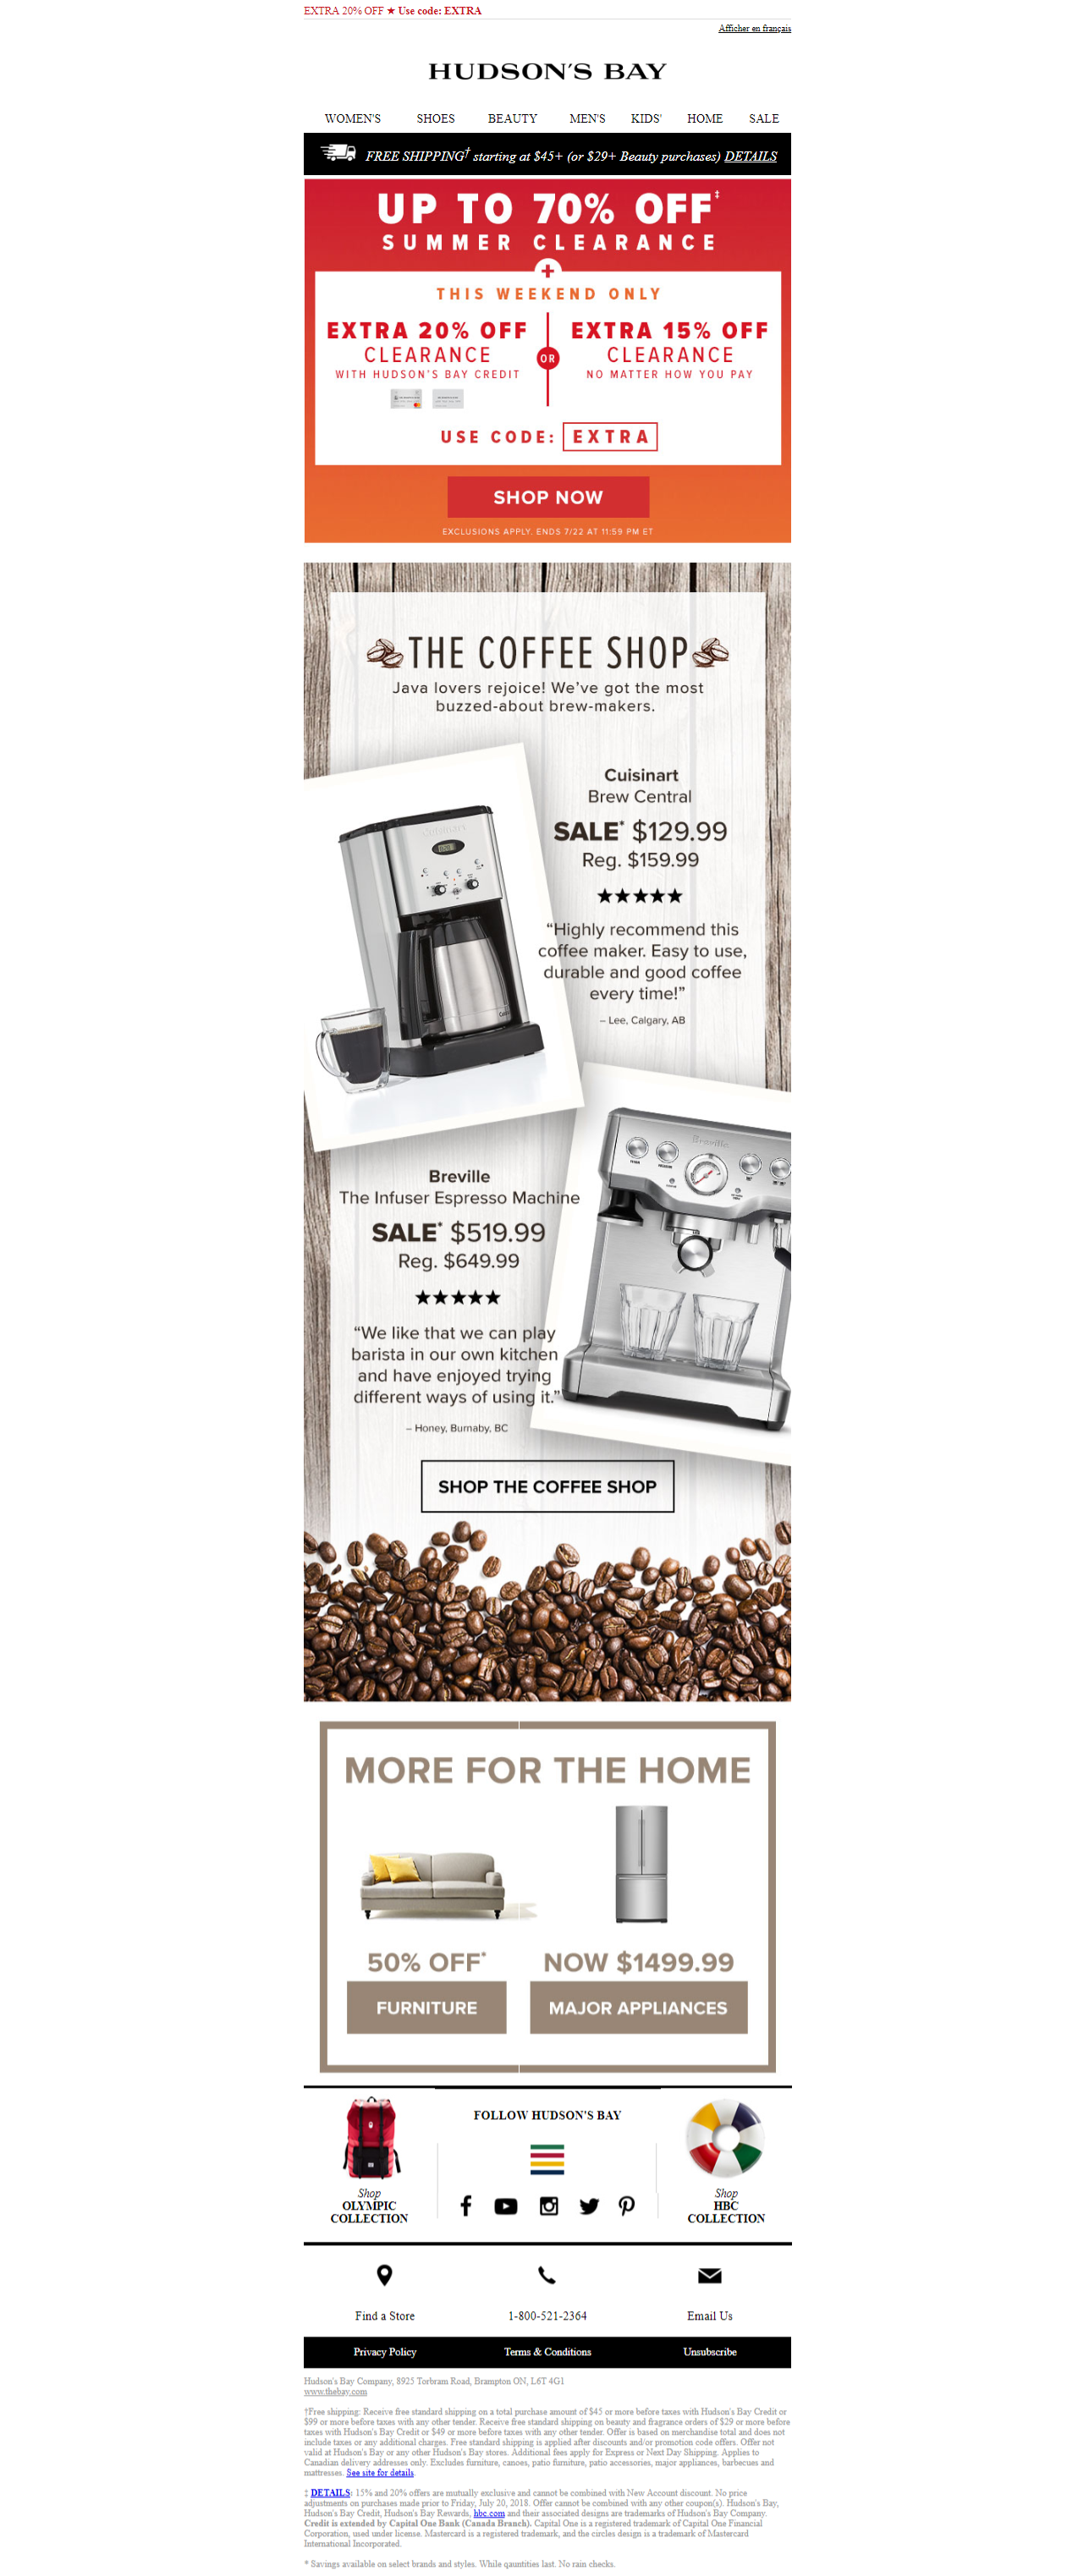 The Coffee Shop With Customer Quotes Email Emailmarketing Hudson S Bay Customer Quotes Coffee Shop Hudson Bay